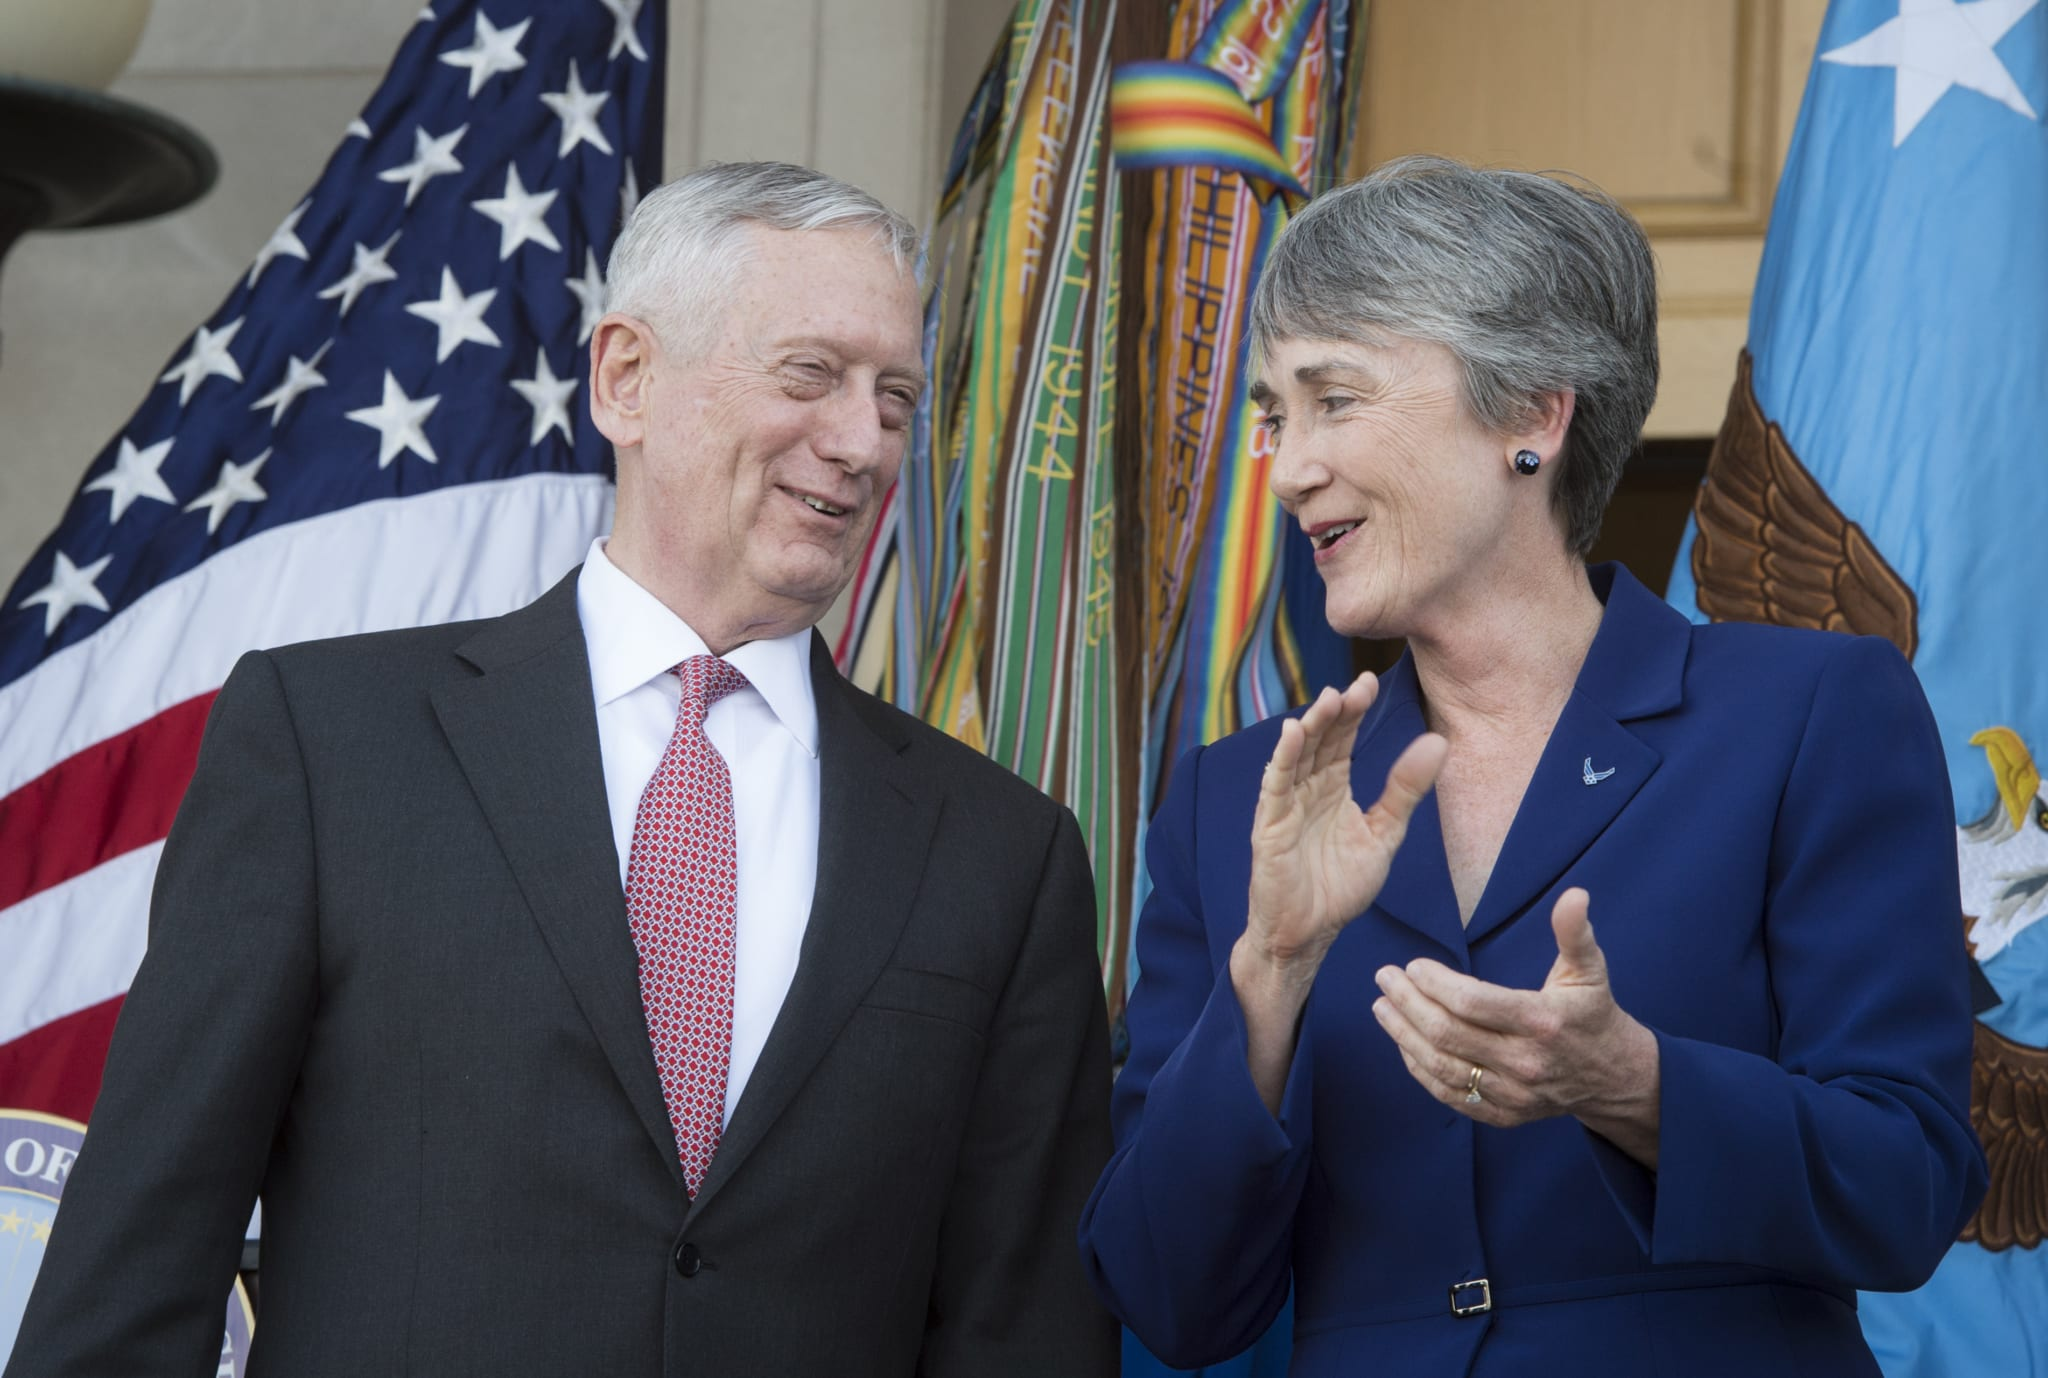 Image Secretary of Defense James Mattis with Secretary of the Air Force Heather Wilson after her swearing-in ceremony May 16, 2017. Mattis originally opposed the Space Force for budgetary concerns, but has since voiced support for establishing a new combatant command for space (DOD photo by Air Force Tech. Sgt. Brigitte N. Brantley)